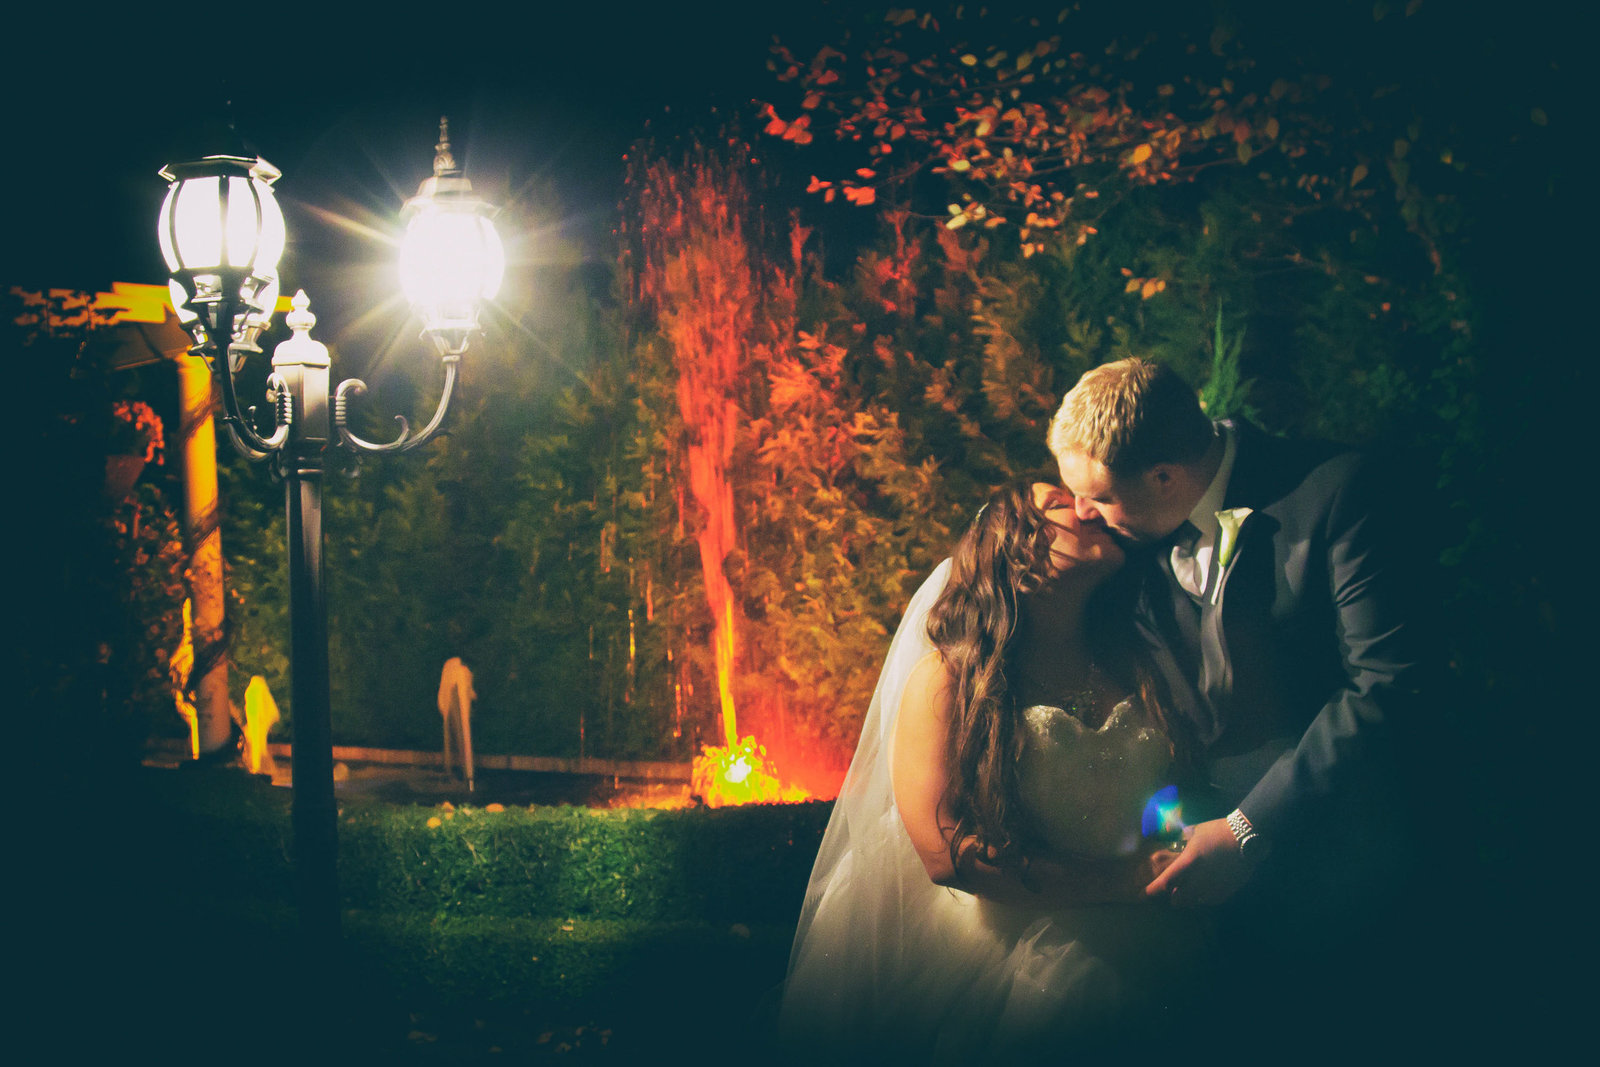 Bride and groom kiss at night among the light of a lantern.